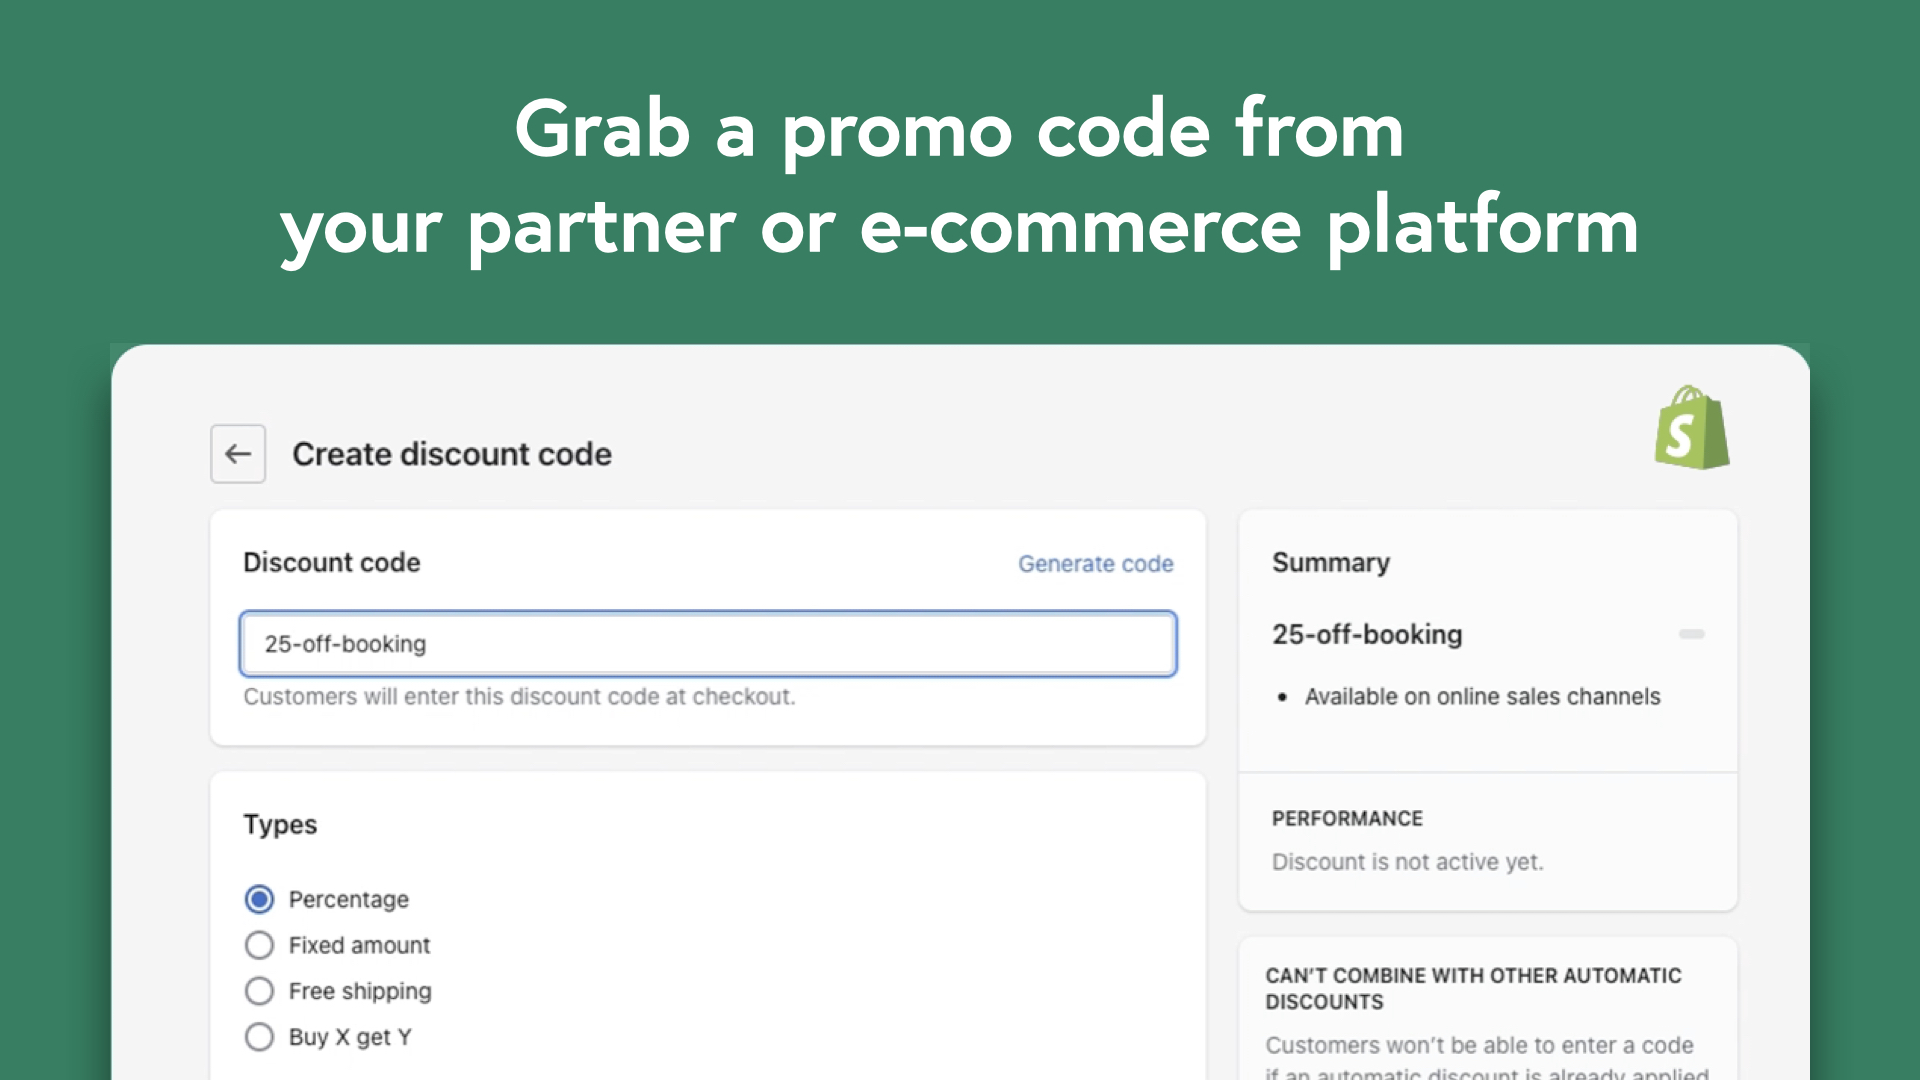 Grab a promo code from your partner or e-commerce platform